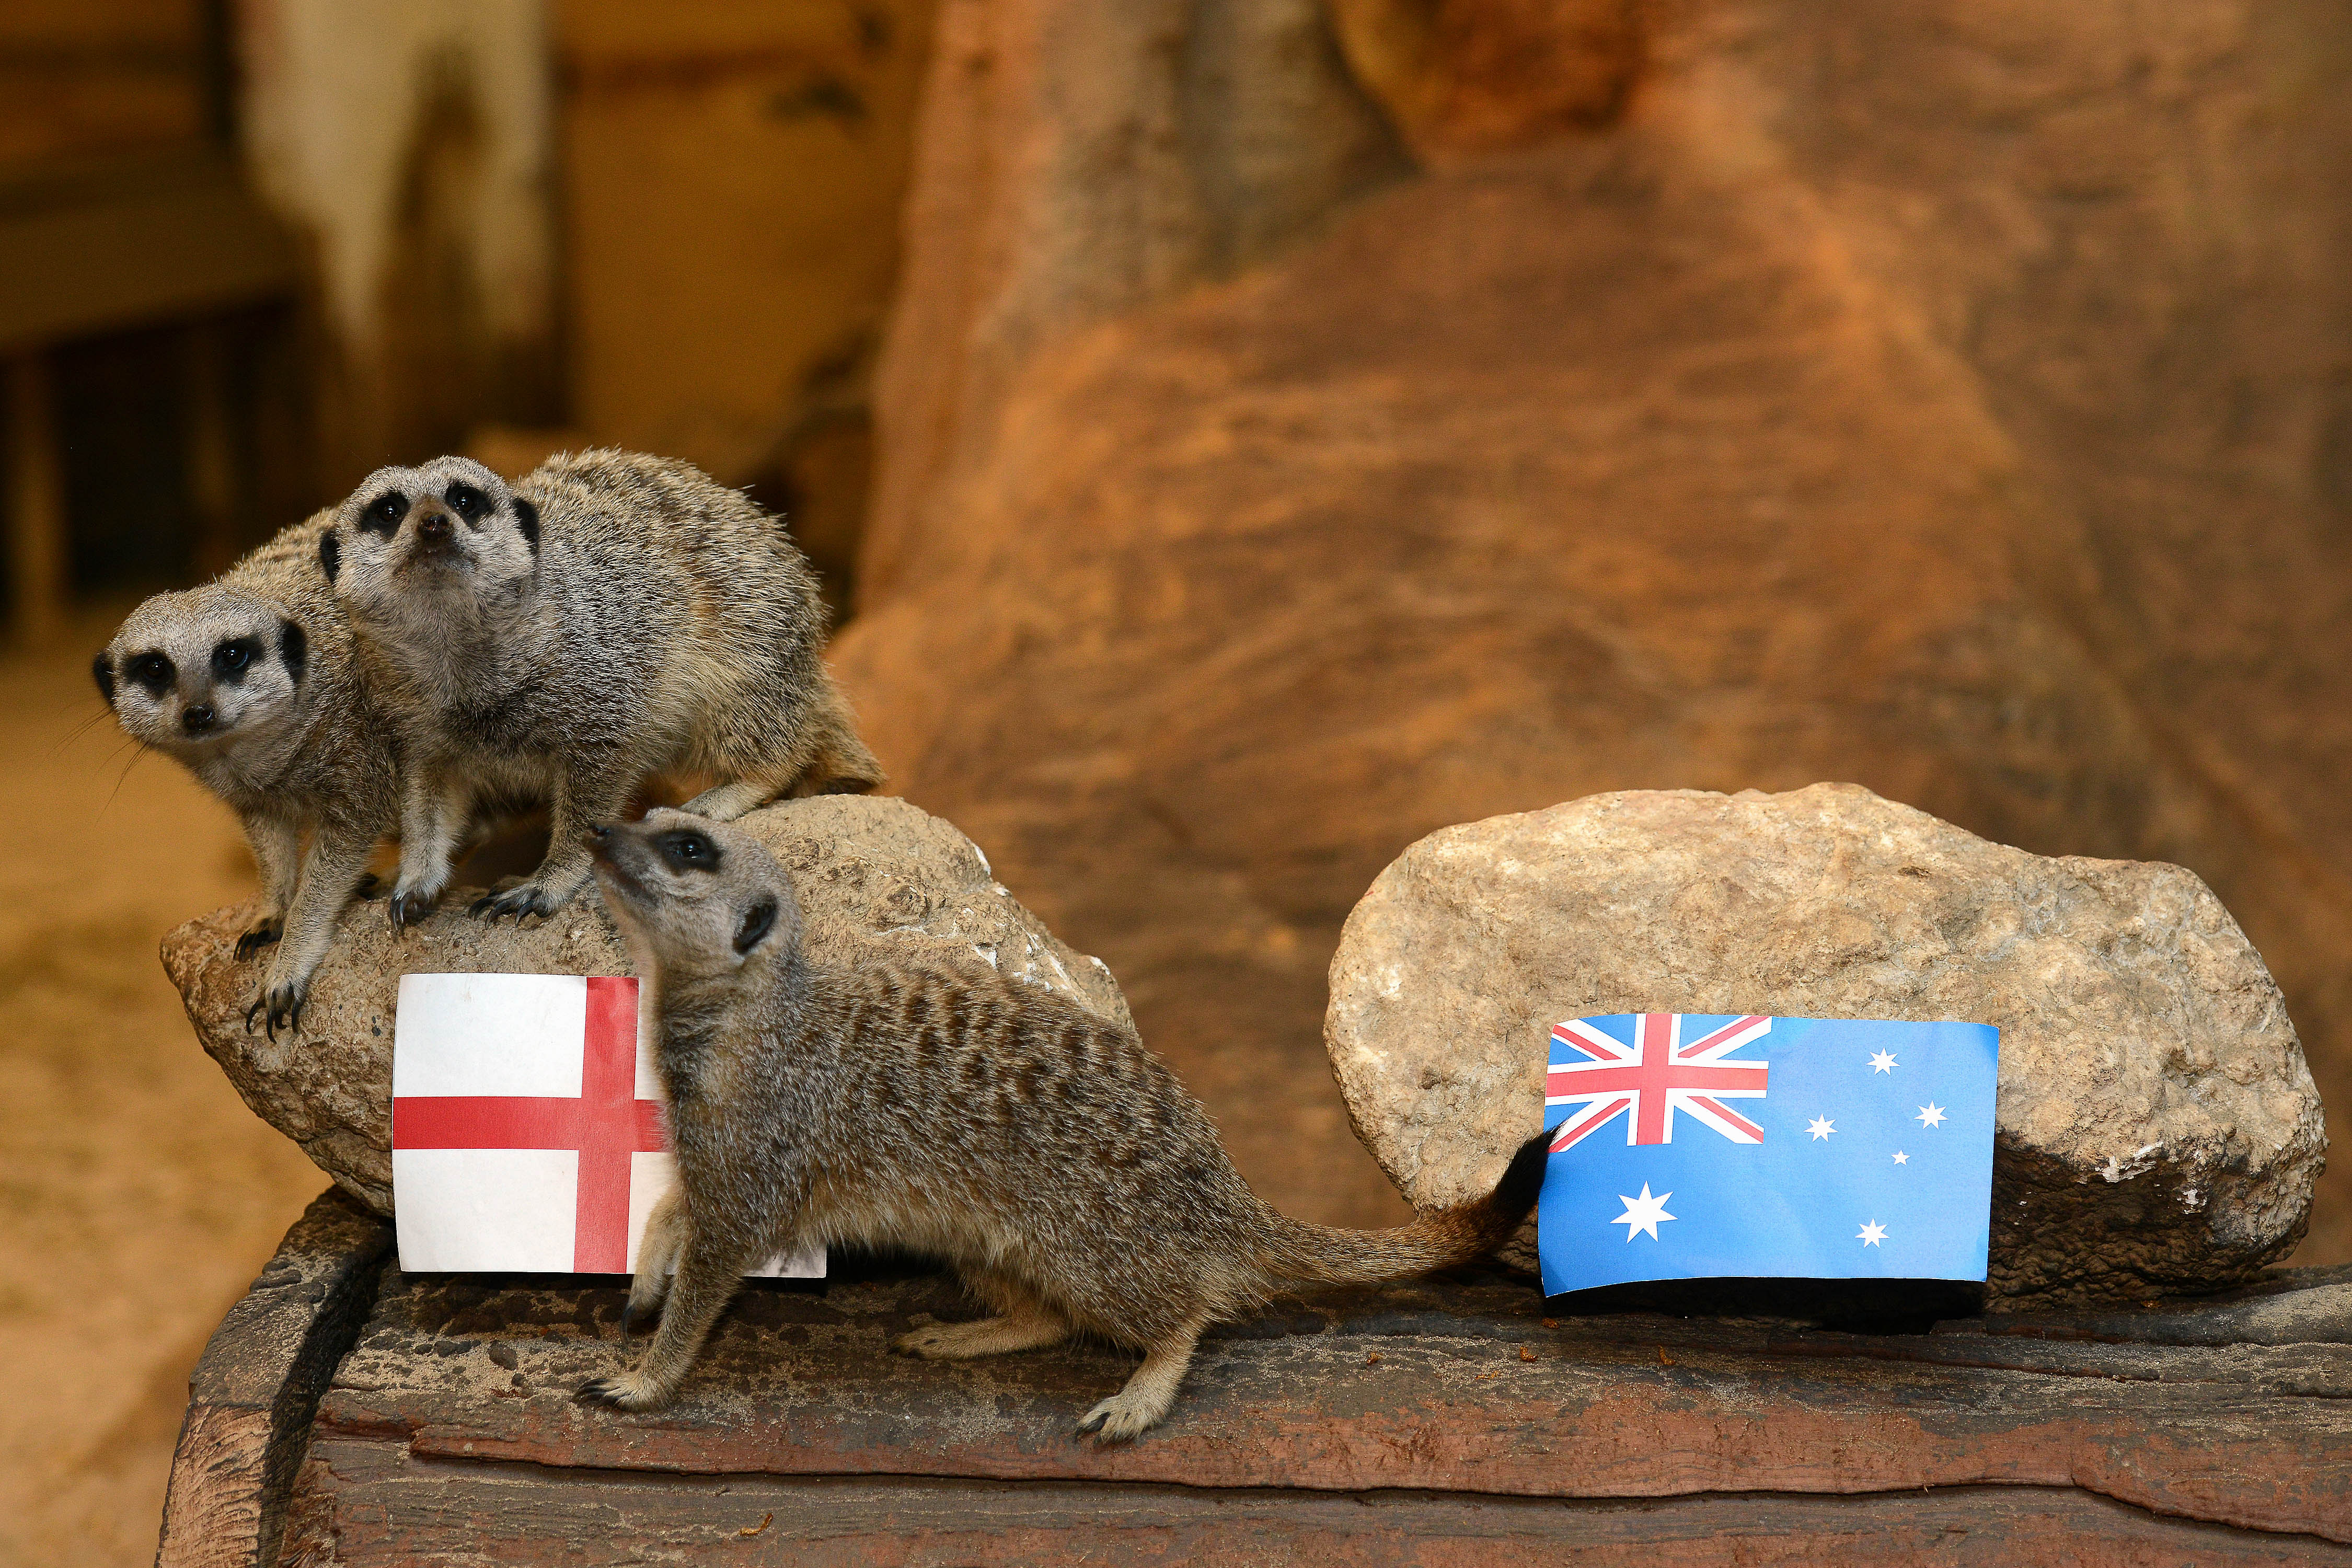 England will beat Australia and qualify for the knockout stages of the Rugby World Cup 2015, according to psychic meerkats